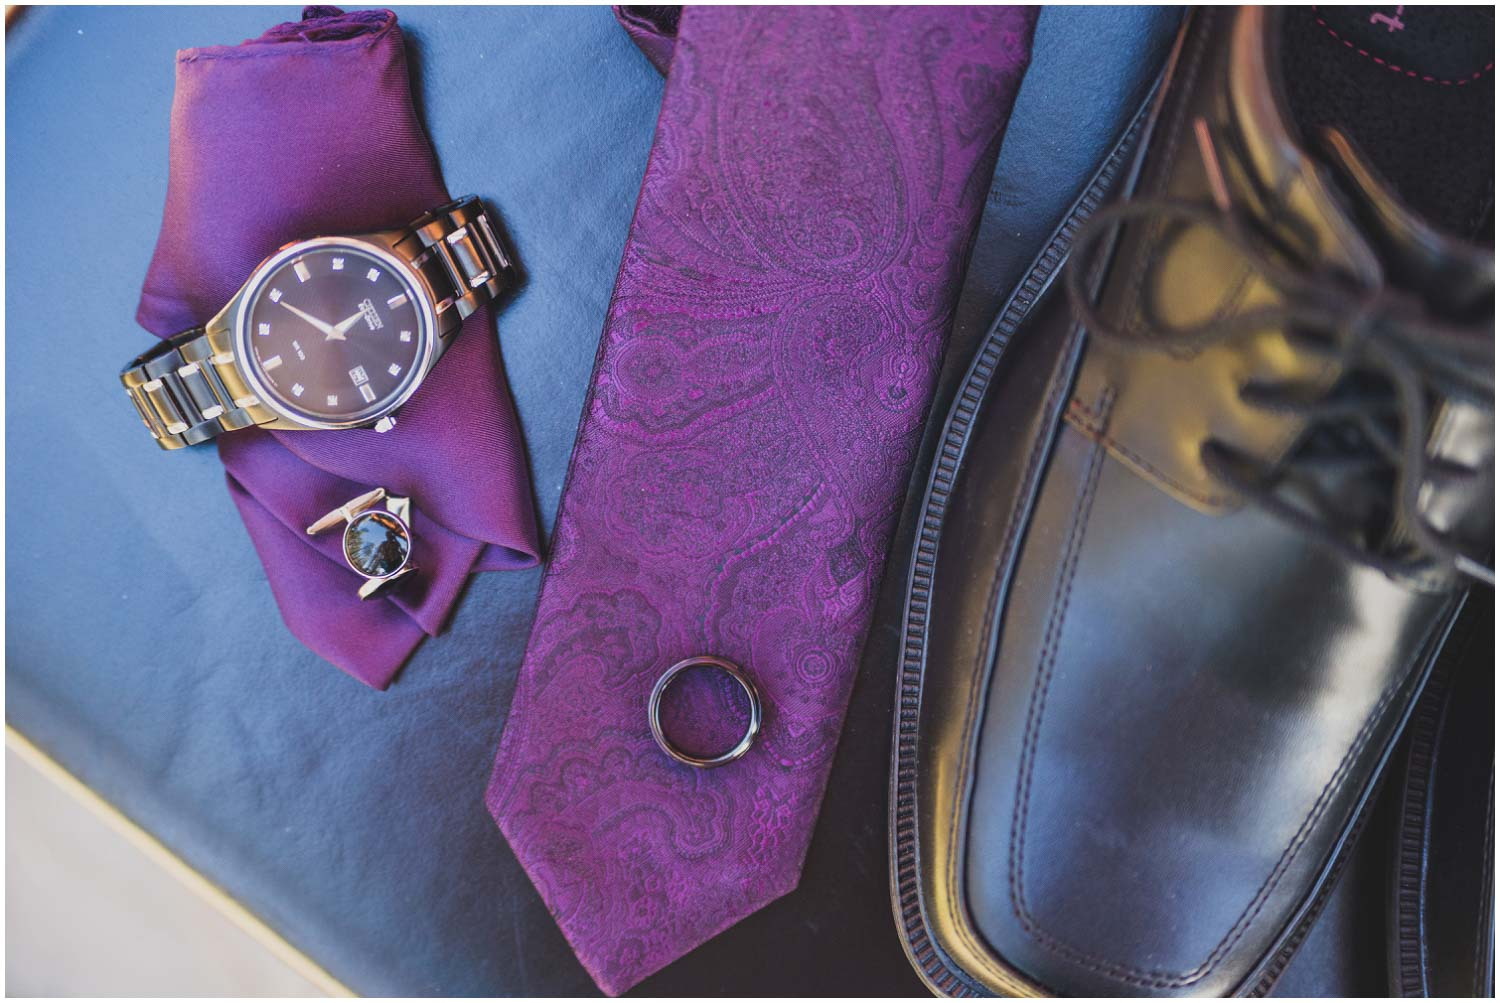 bride's details including purple tie and pocket square, watch and black wedding ring